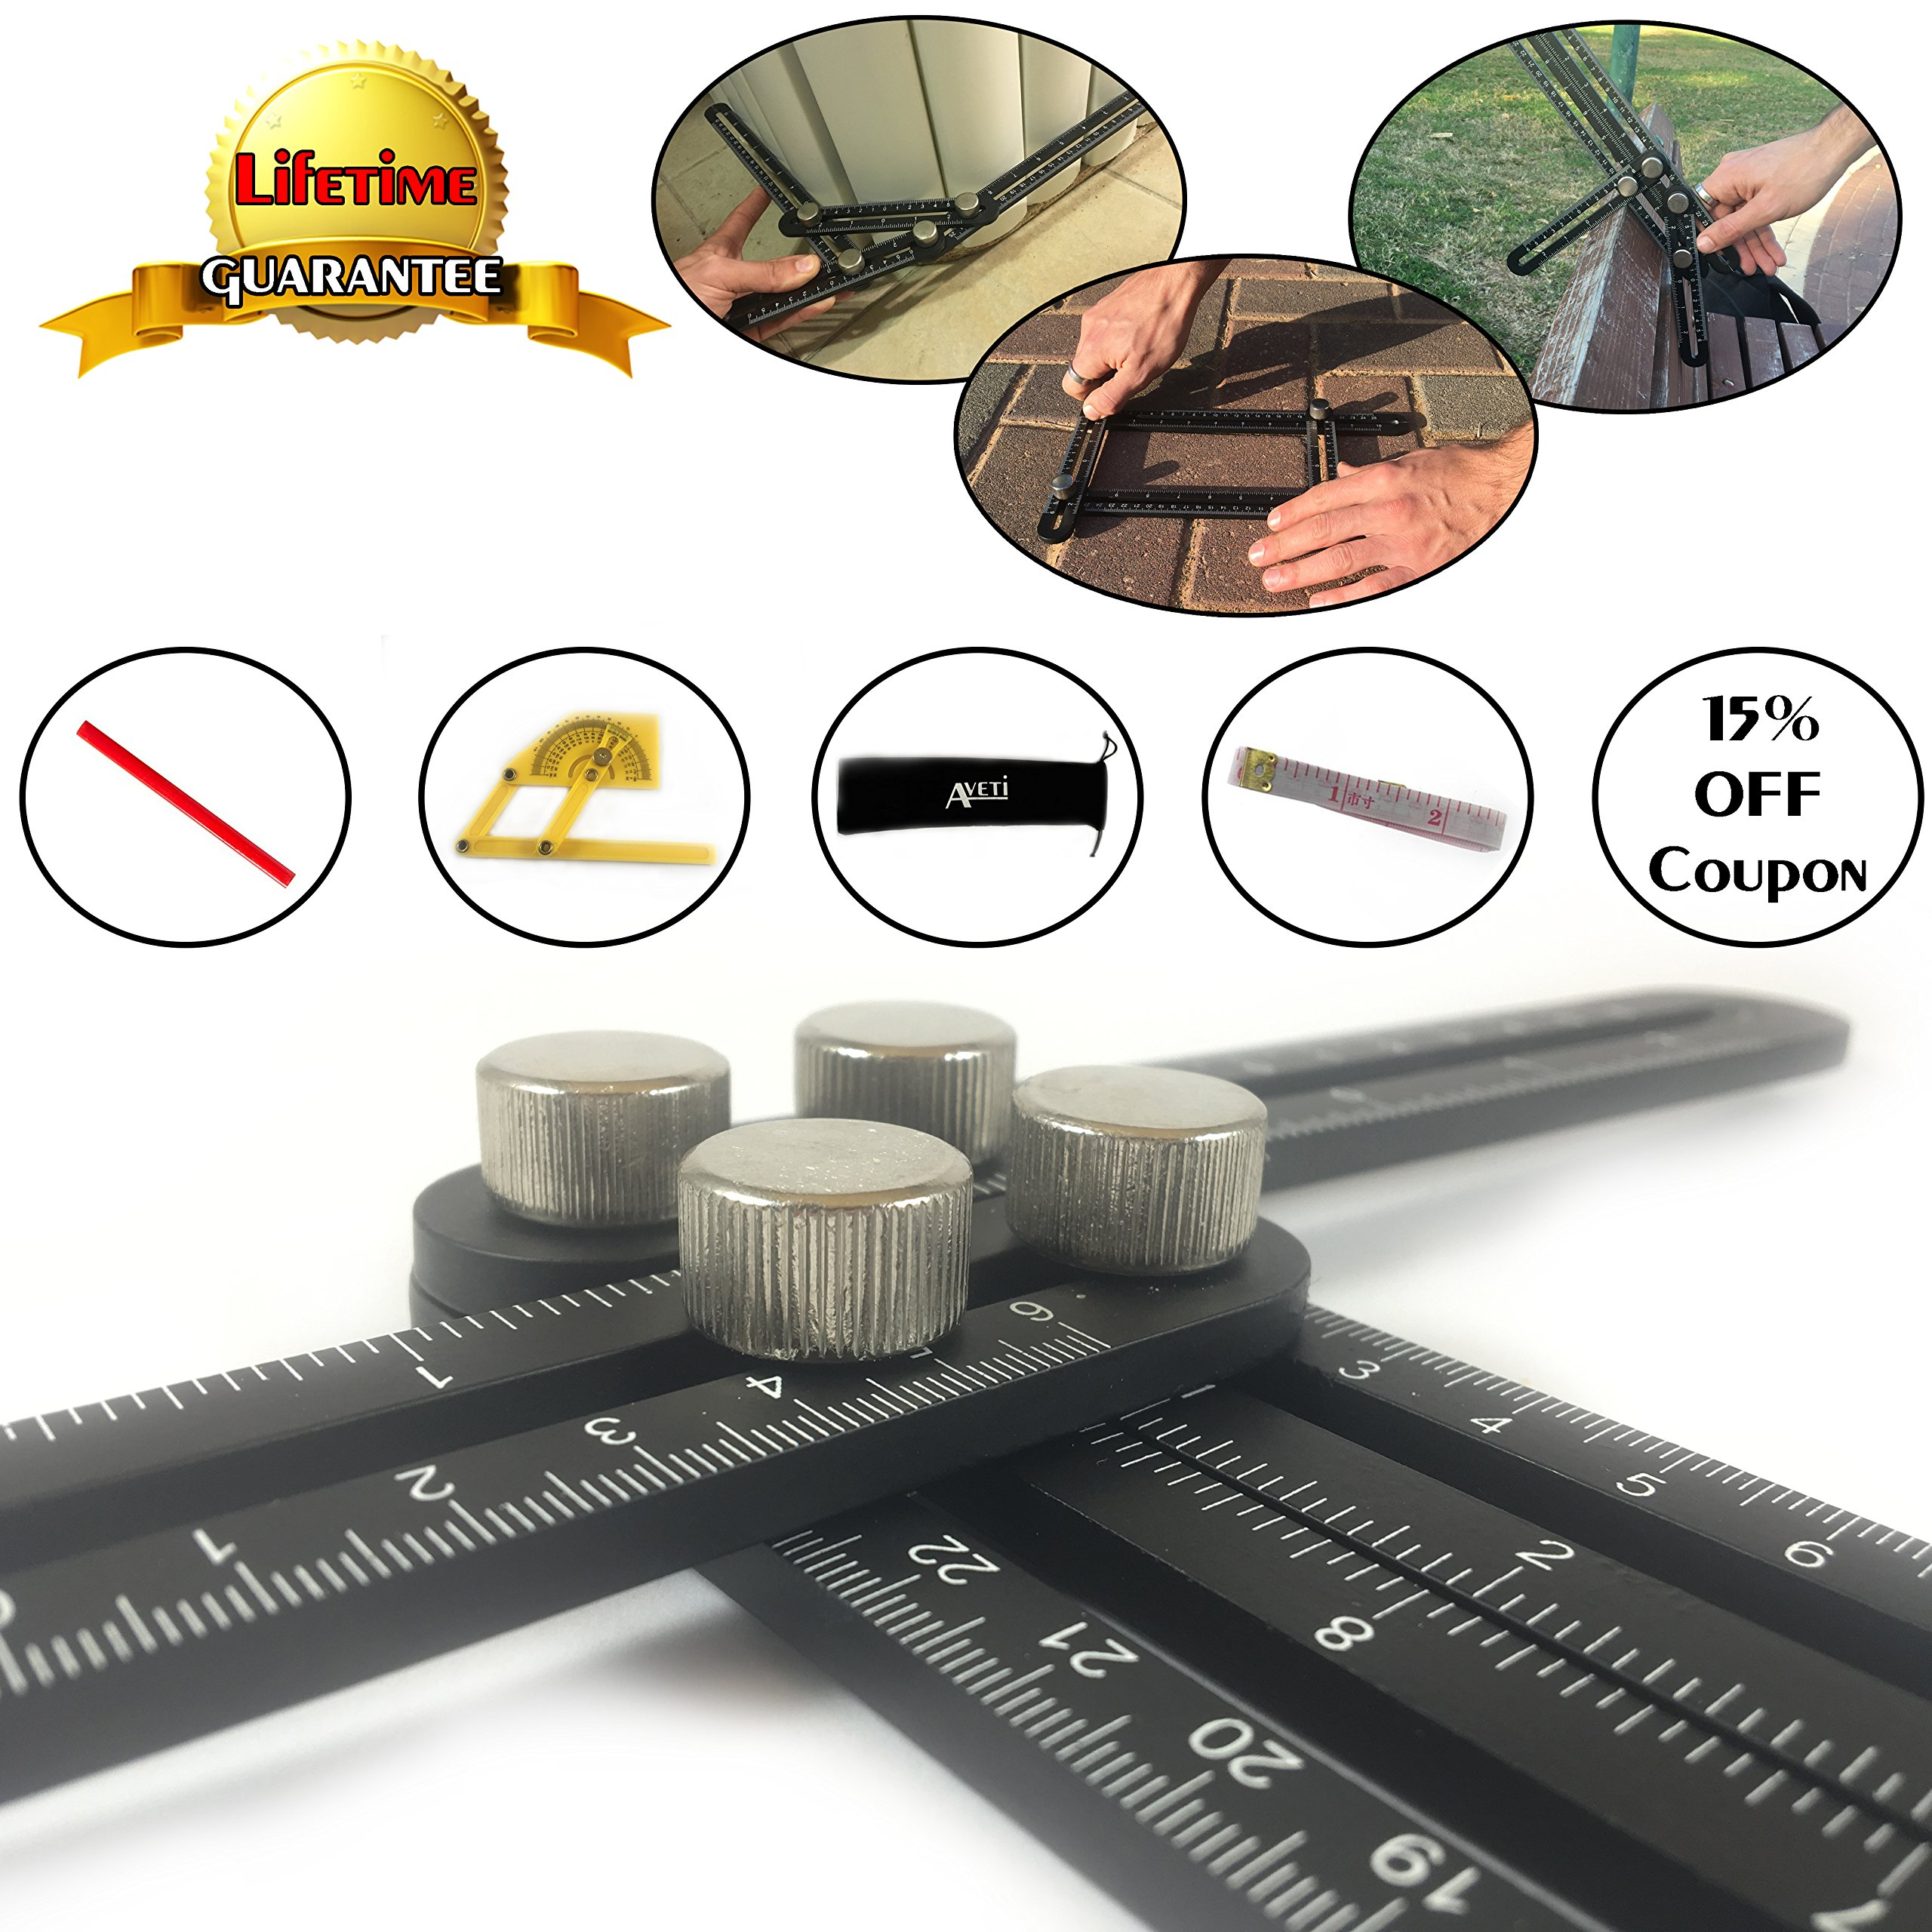 Template Tool Multi Angle Measuring Ruler- Must Anglerizer Tool For Builders, Craftsmen, Handymen and DIY-ers